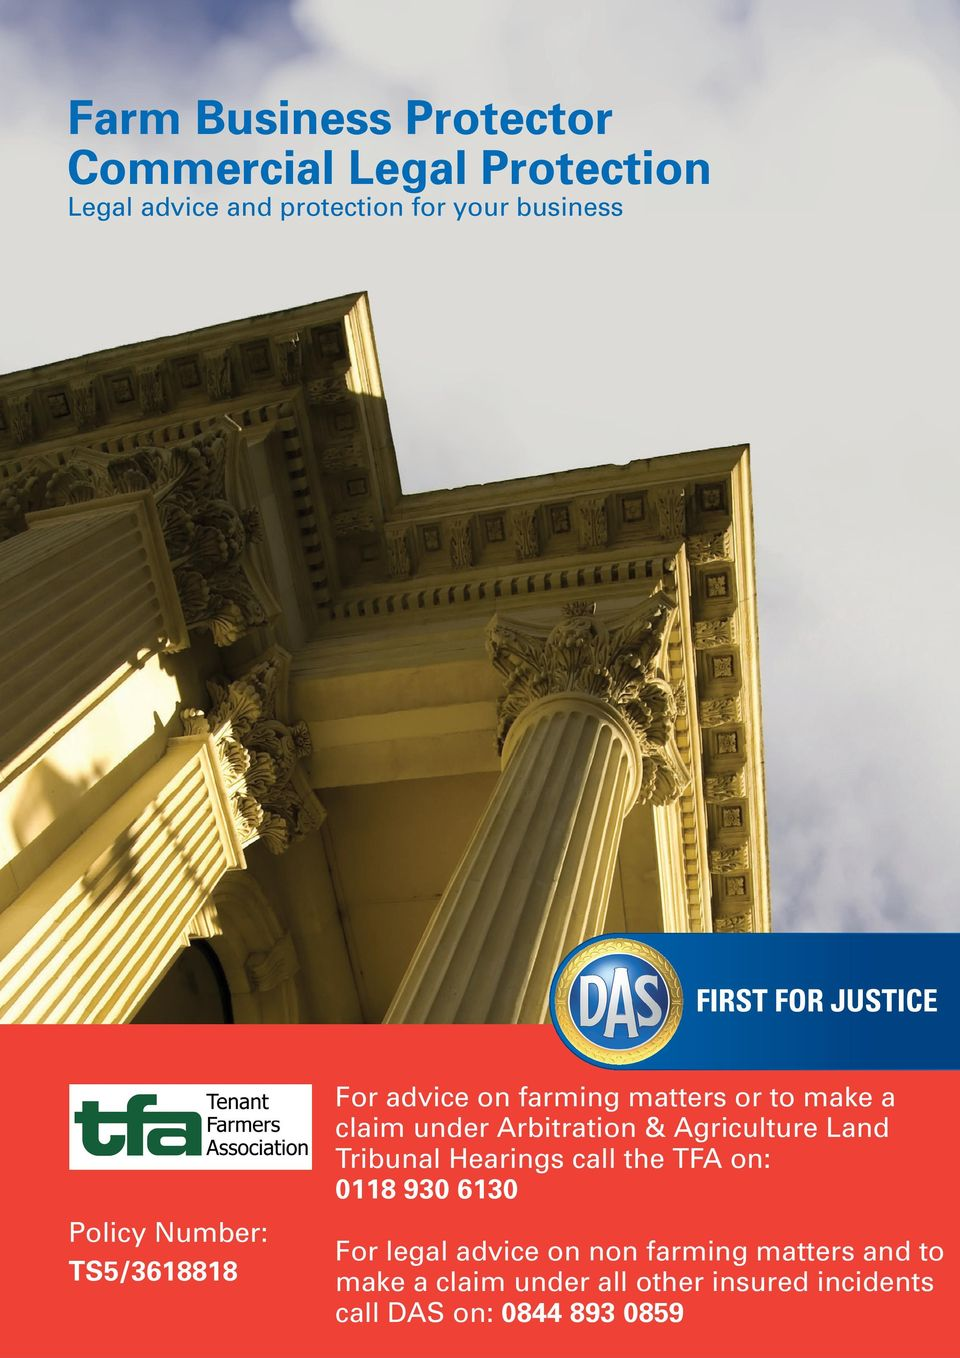 Arbitration & Agriculture Land Tribunal Hearings call the TFA on: 0118 930 6130 For legal